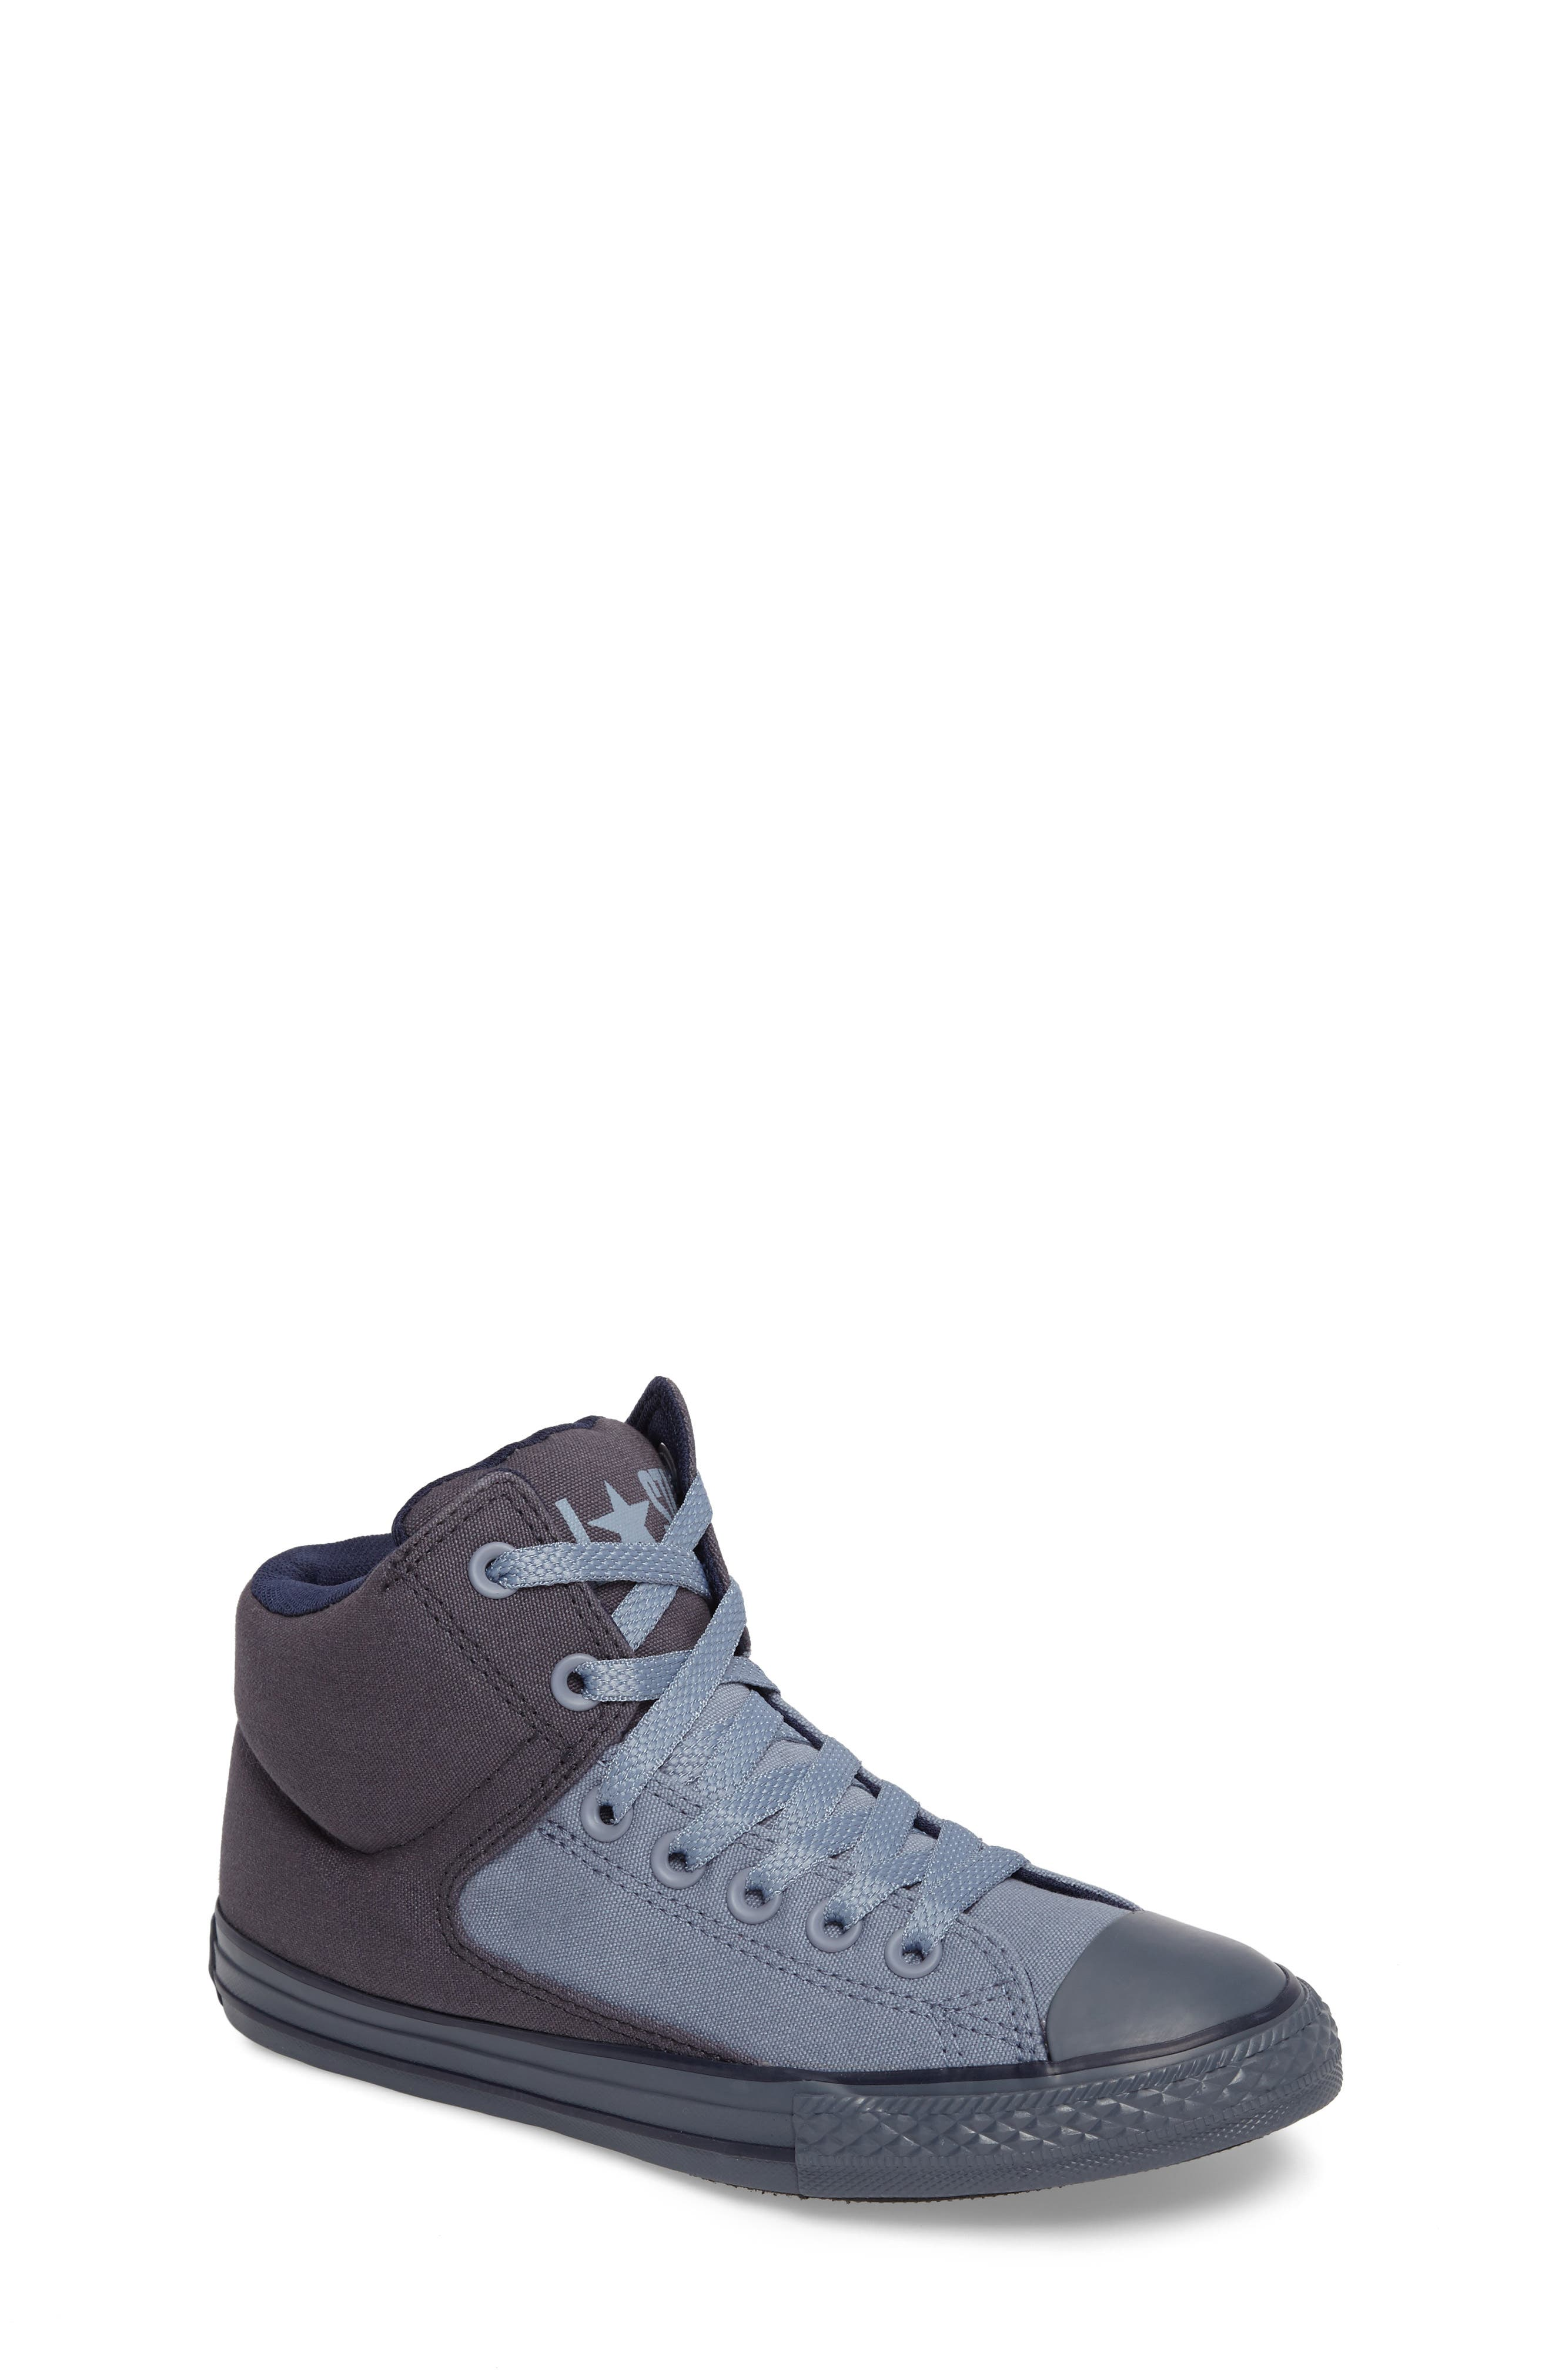 Chuck Taylor<sup>®</sup> All Star<sup>®</sup> High Street High Top Sneaker,                             Main thumbnail 1, color,                             Sharkskin Canvas